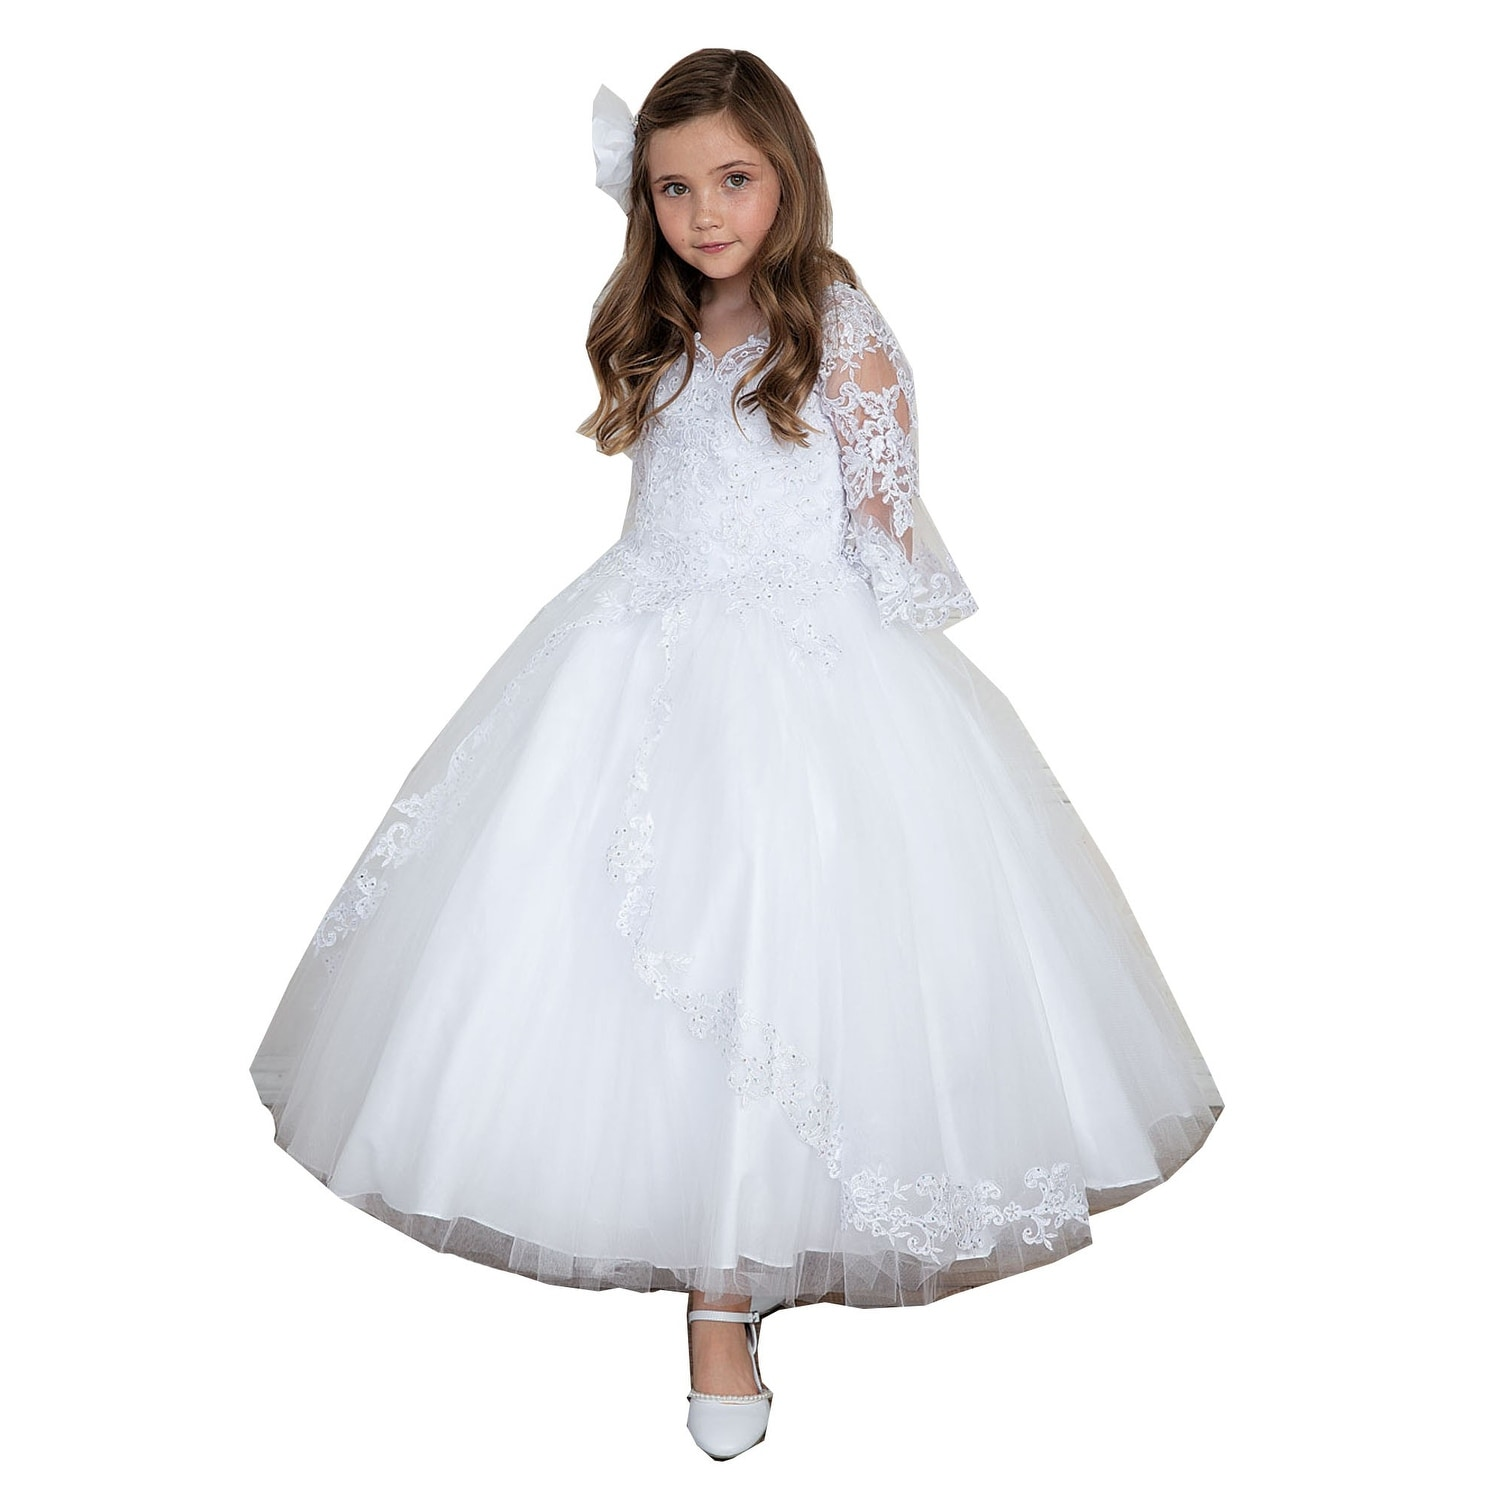 b44eadb1a Shop Calla Collection Little Girls White Embroidered Floor Length Flower  Girl Dress - Free Shipping Today - Overstock - 18606879